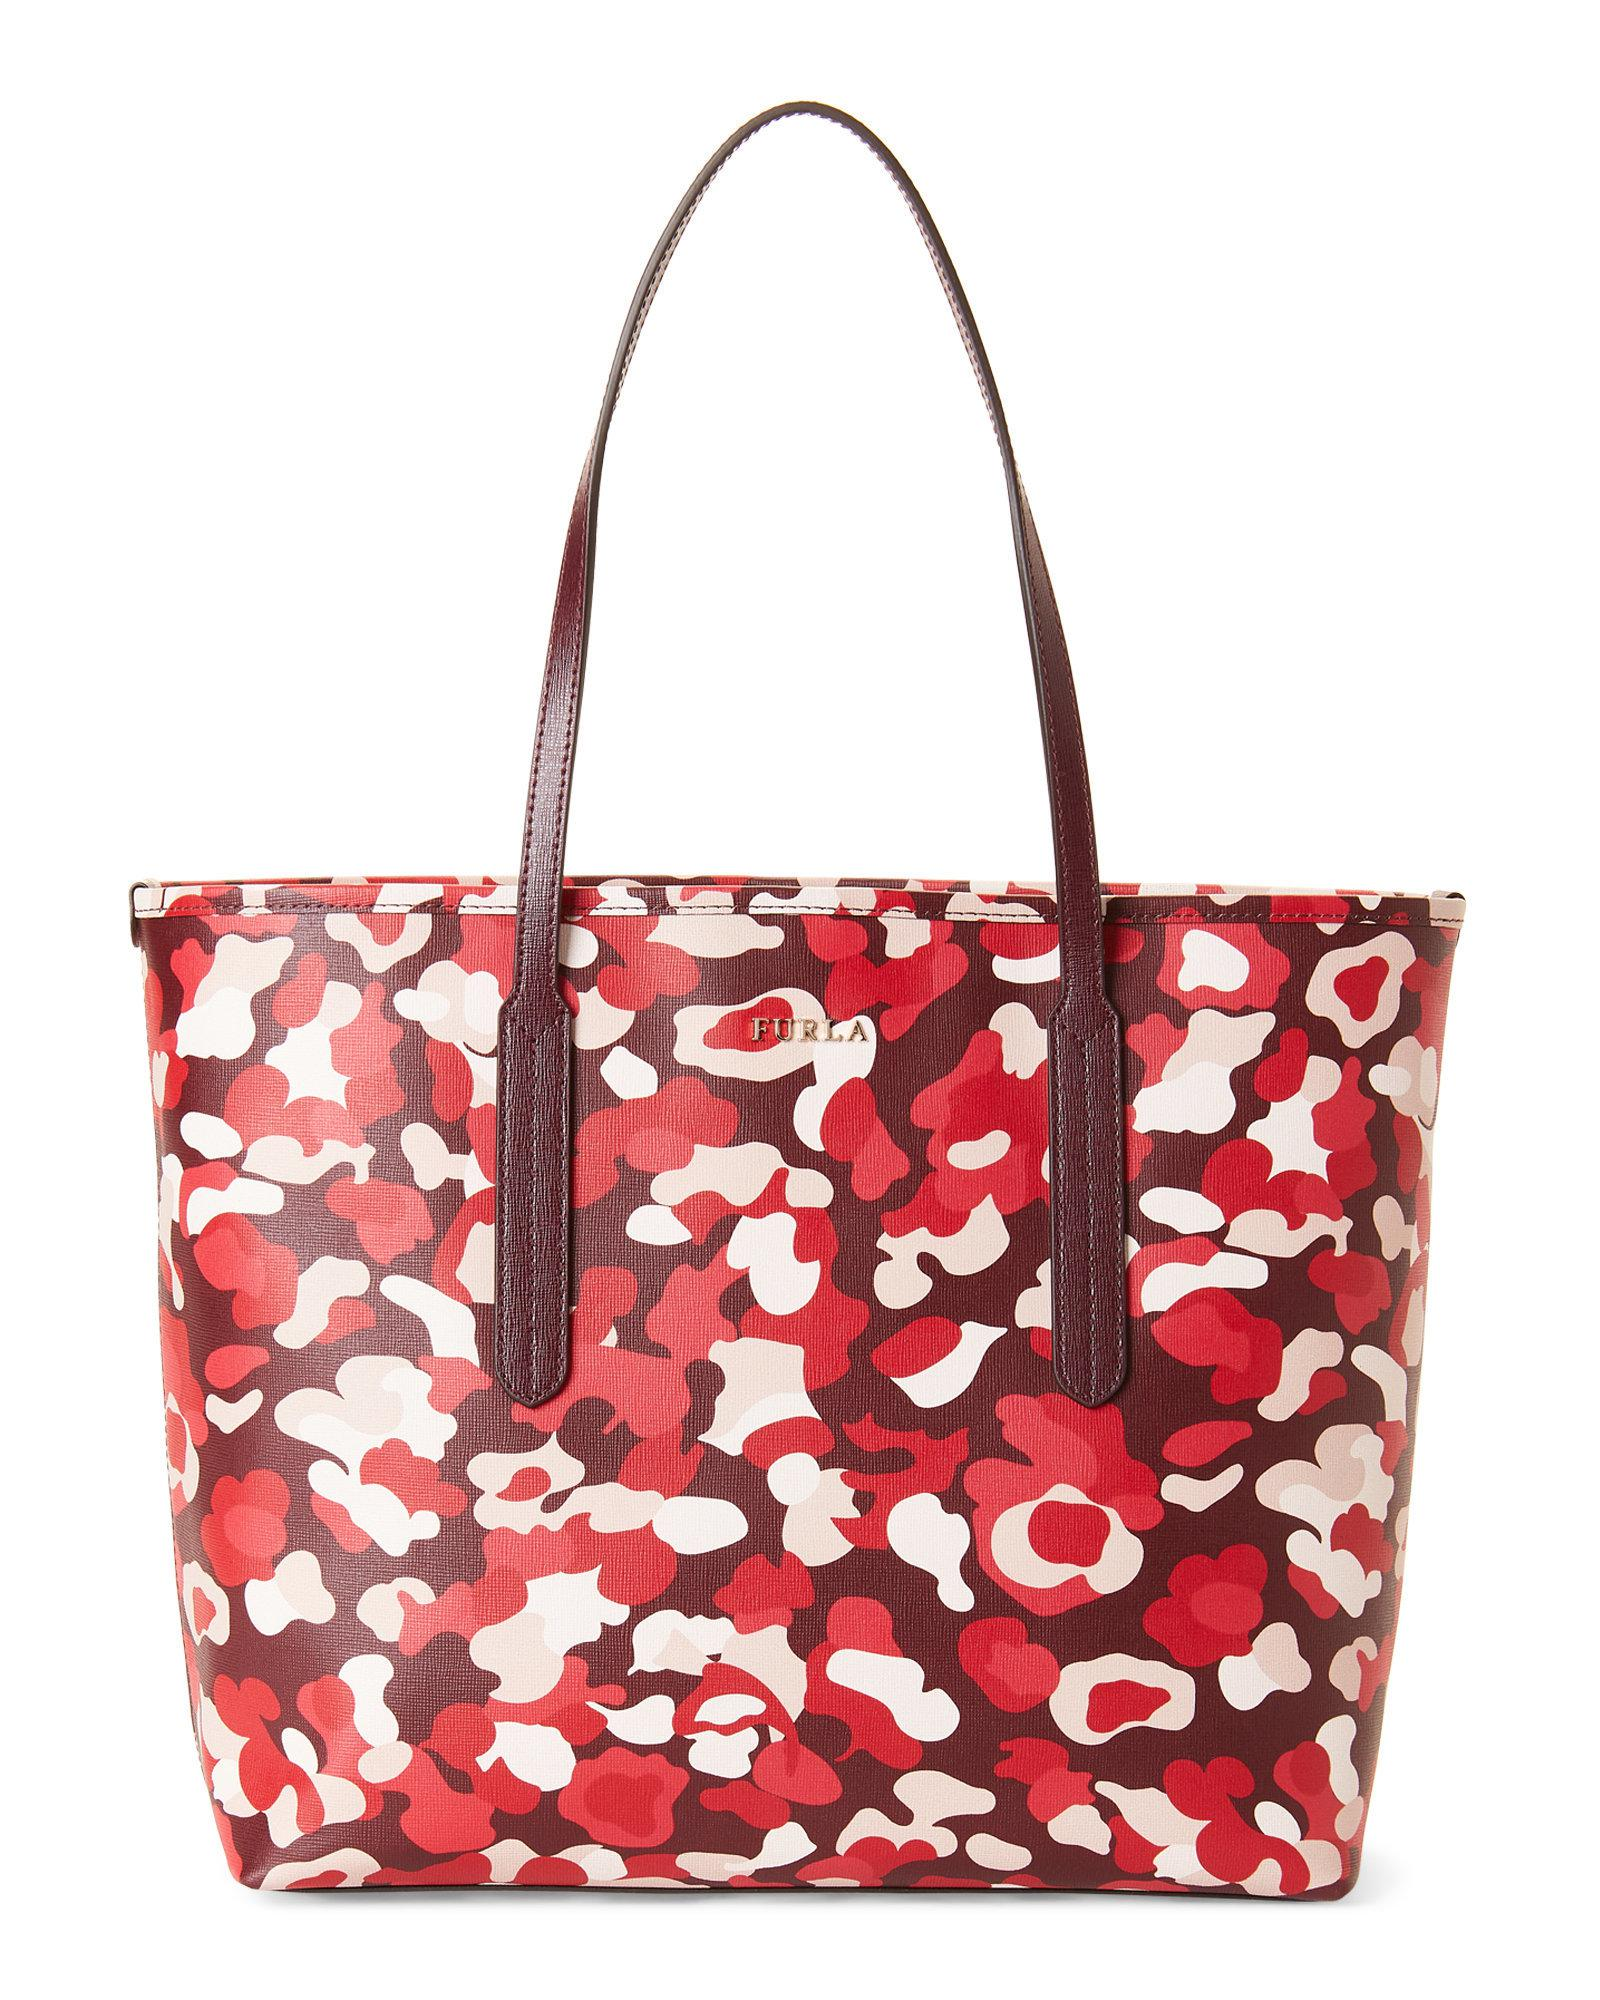 74f070506840 Furla Ariana Tote Price | Stanford Center for Opportunity Policy in ...